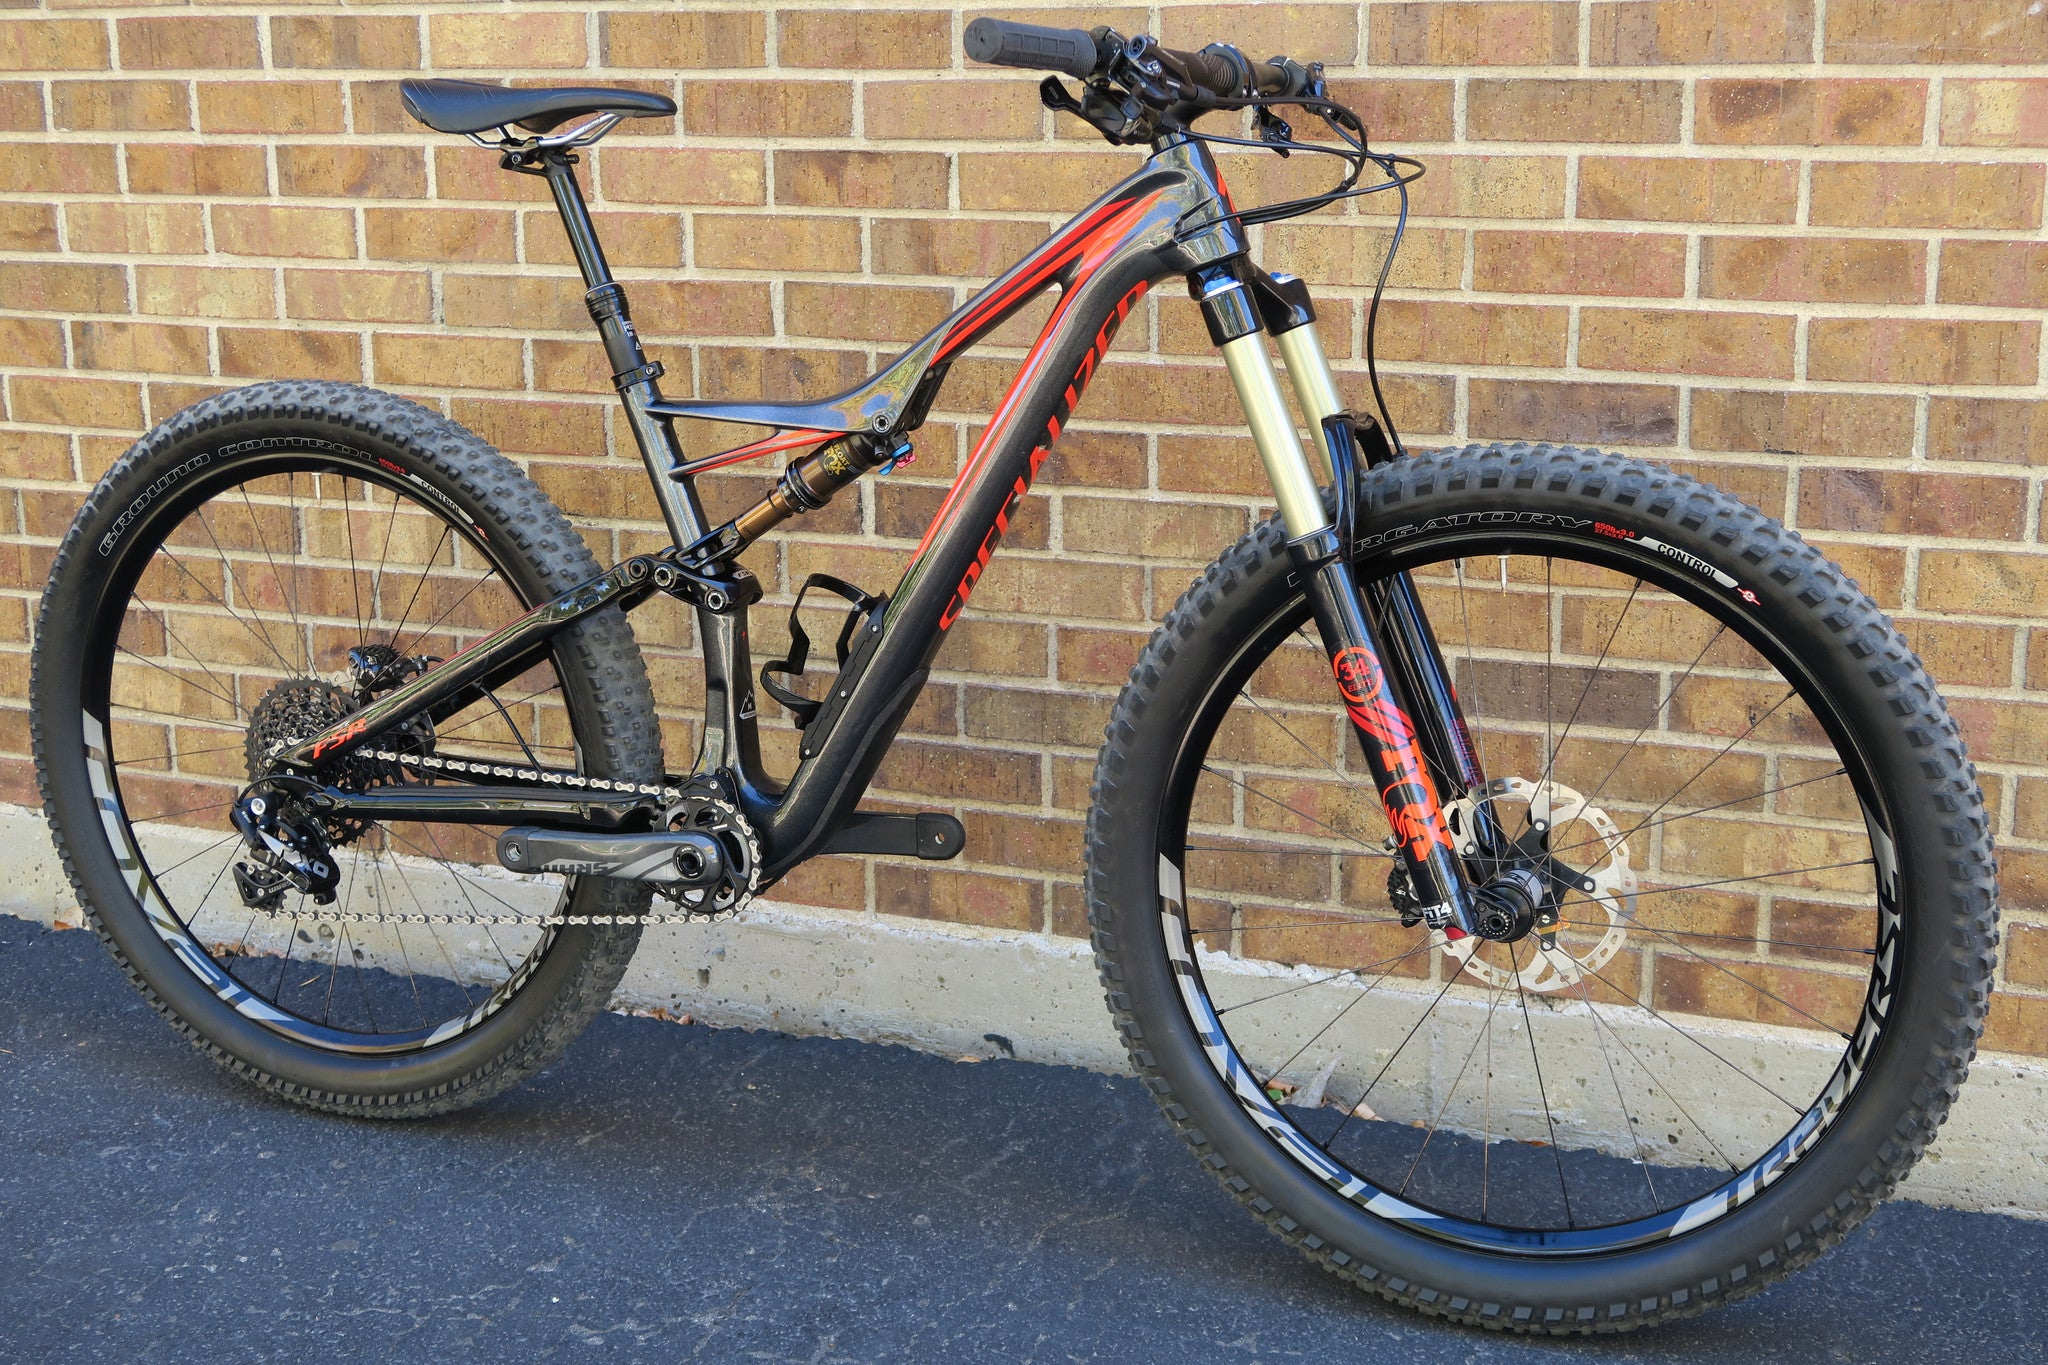 2016 SPECIALIZED STUMPJUMPER FSR EXPERT 6FATTIE 27.5+